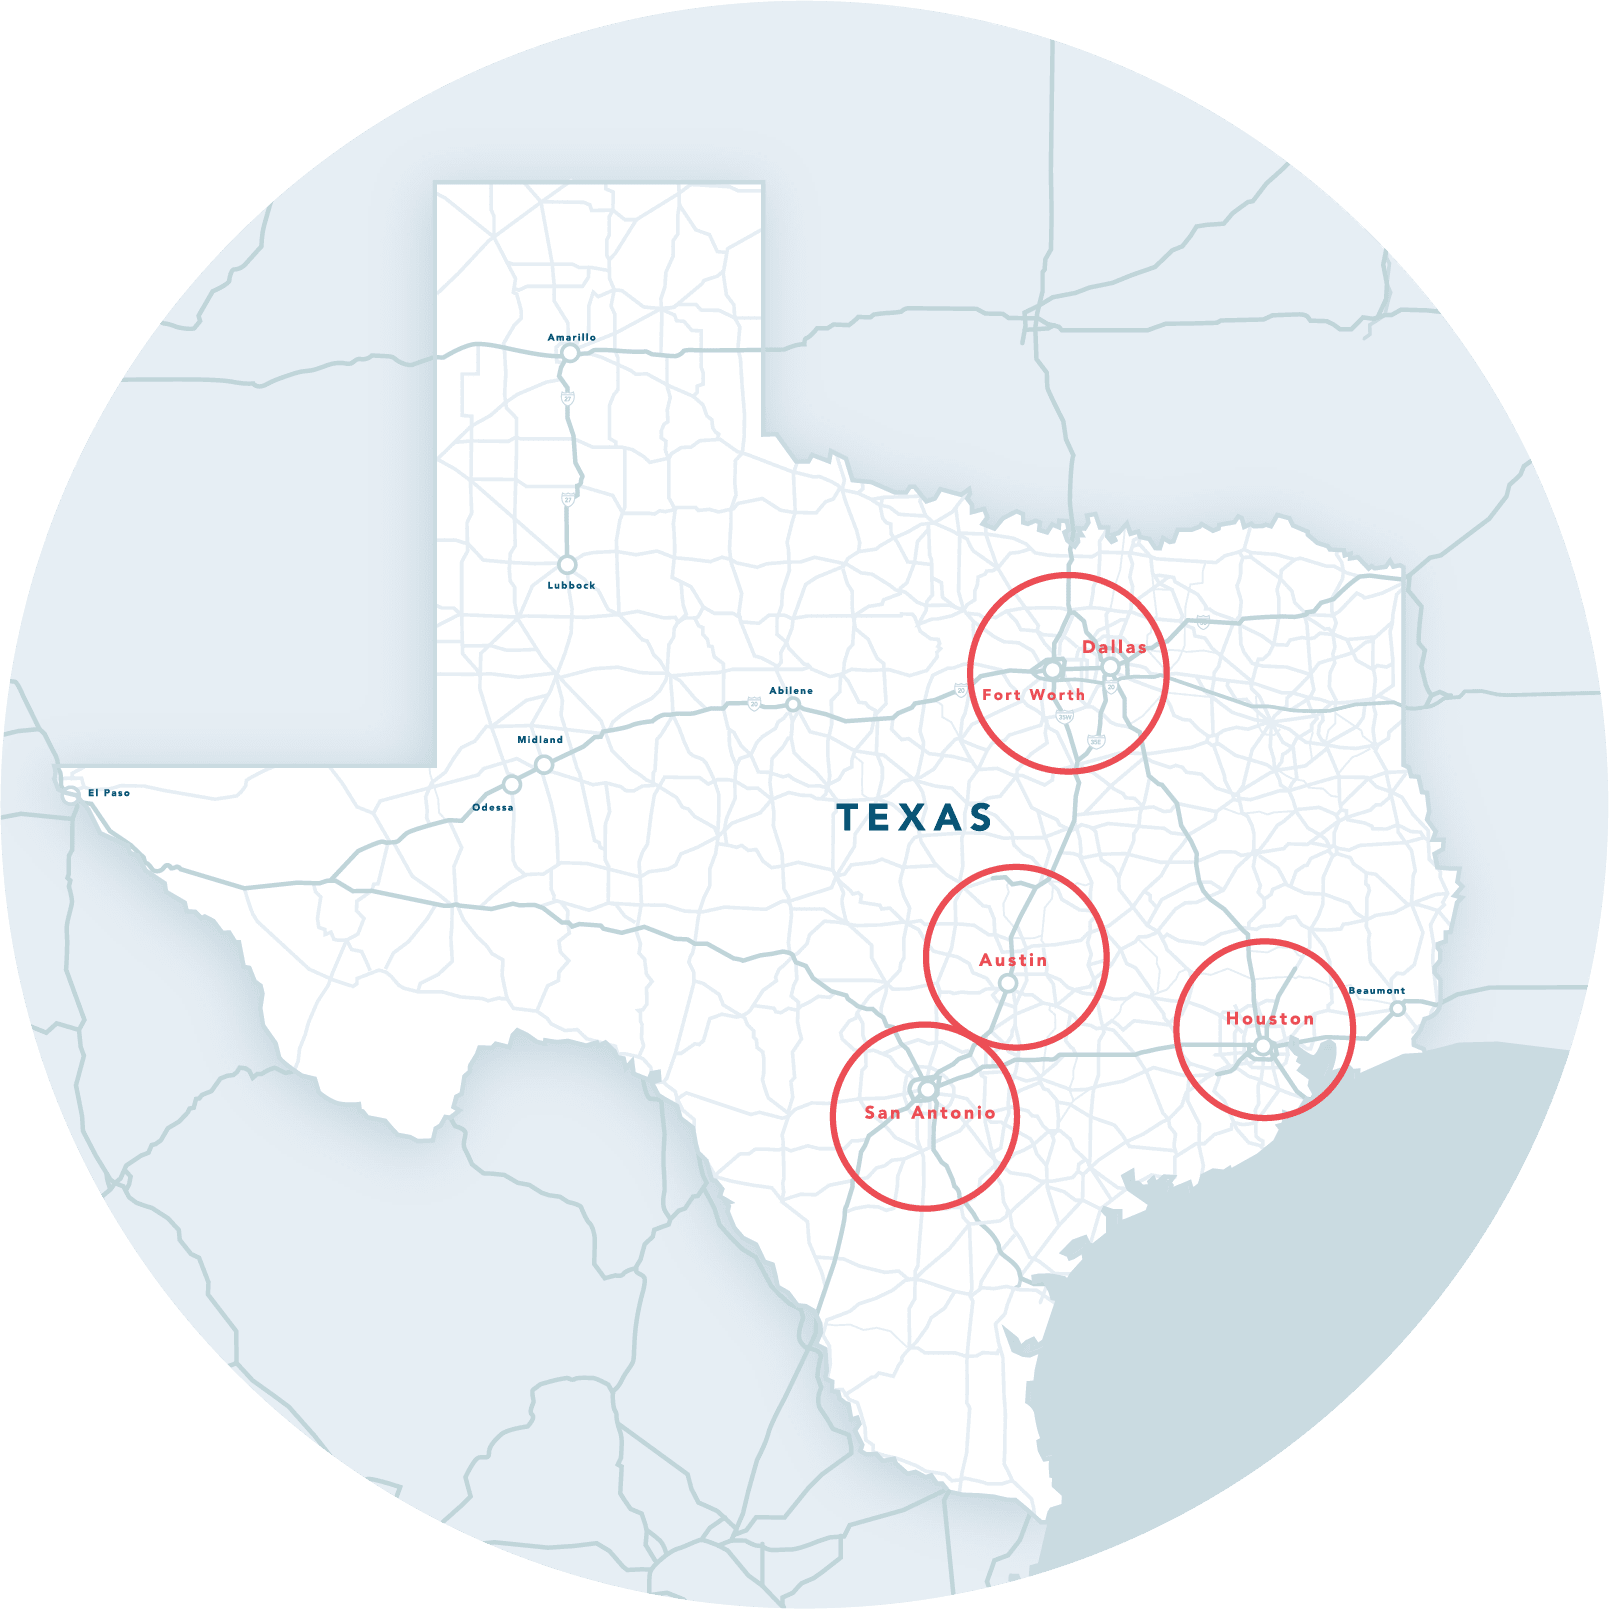 Illustration of Texas with major metro areas highlighted